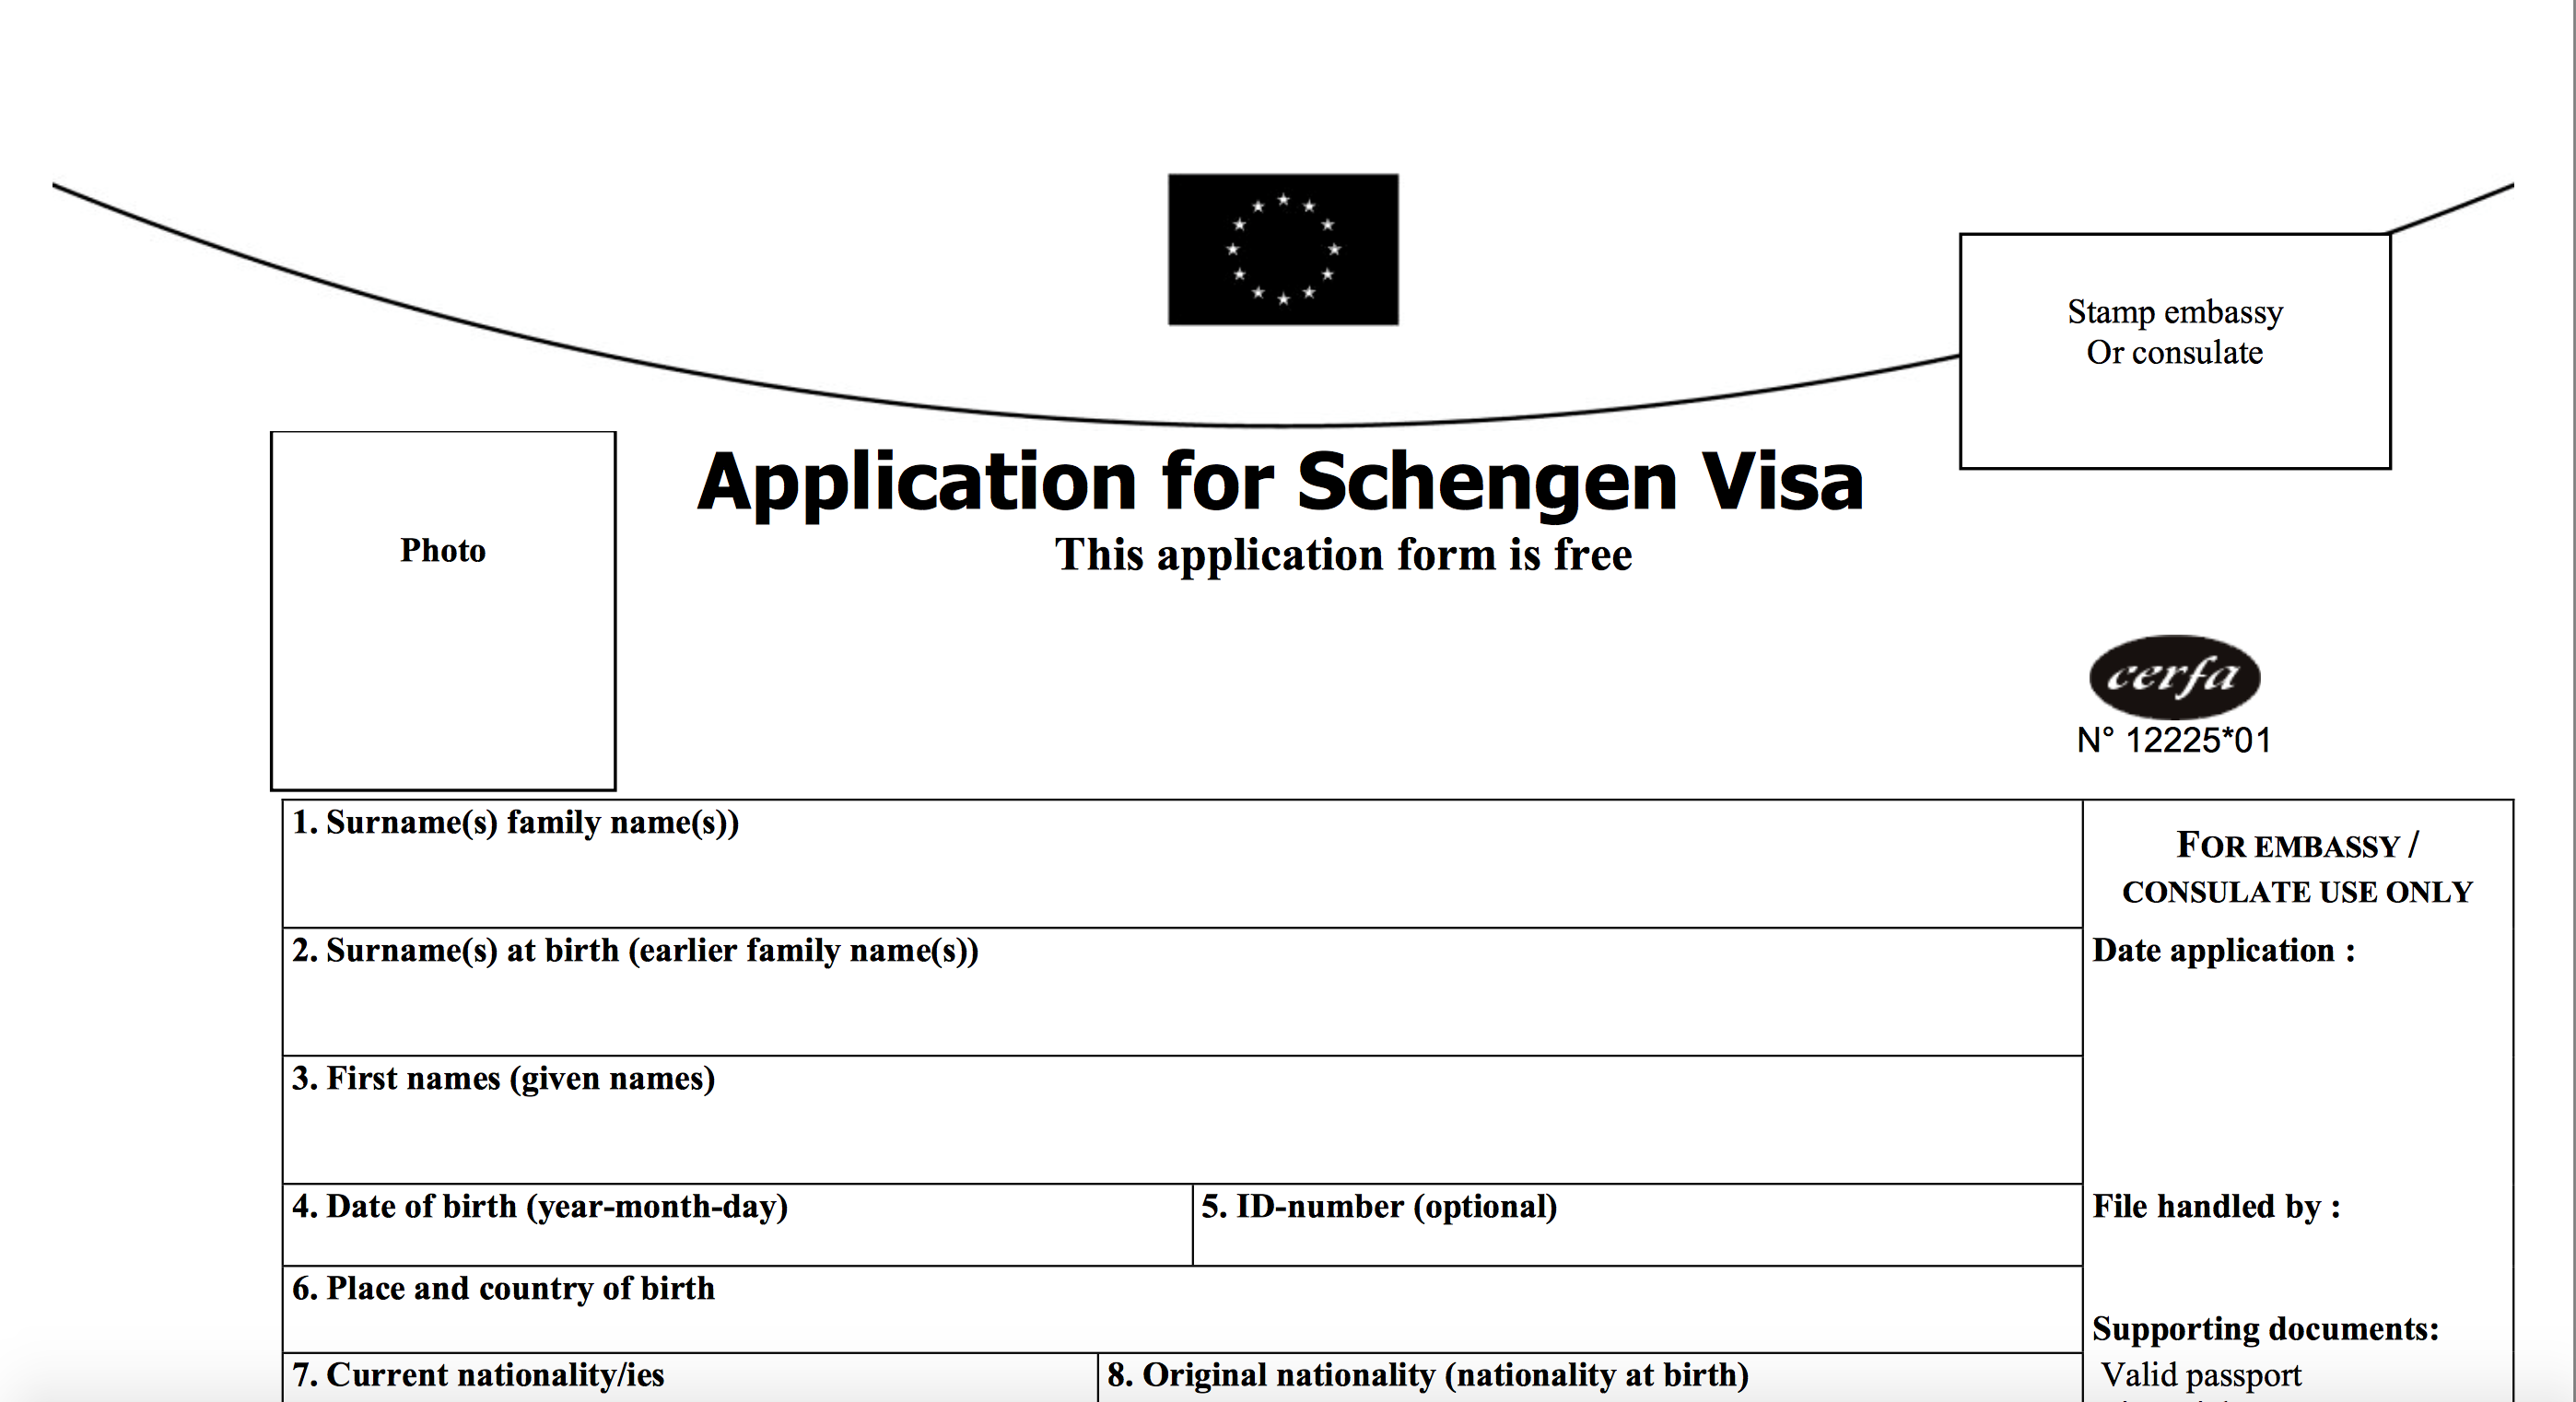 The Schengen Visa Application. The Schengen Visa allows travellers to the freedom of travel between all 26 Schengen countries as if a single country.